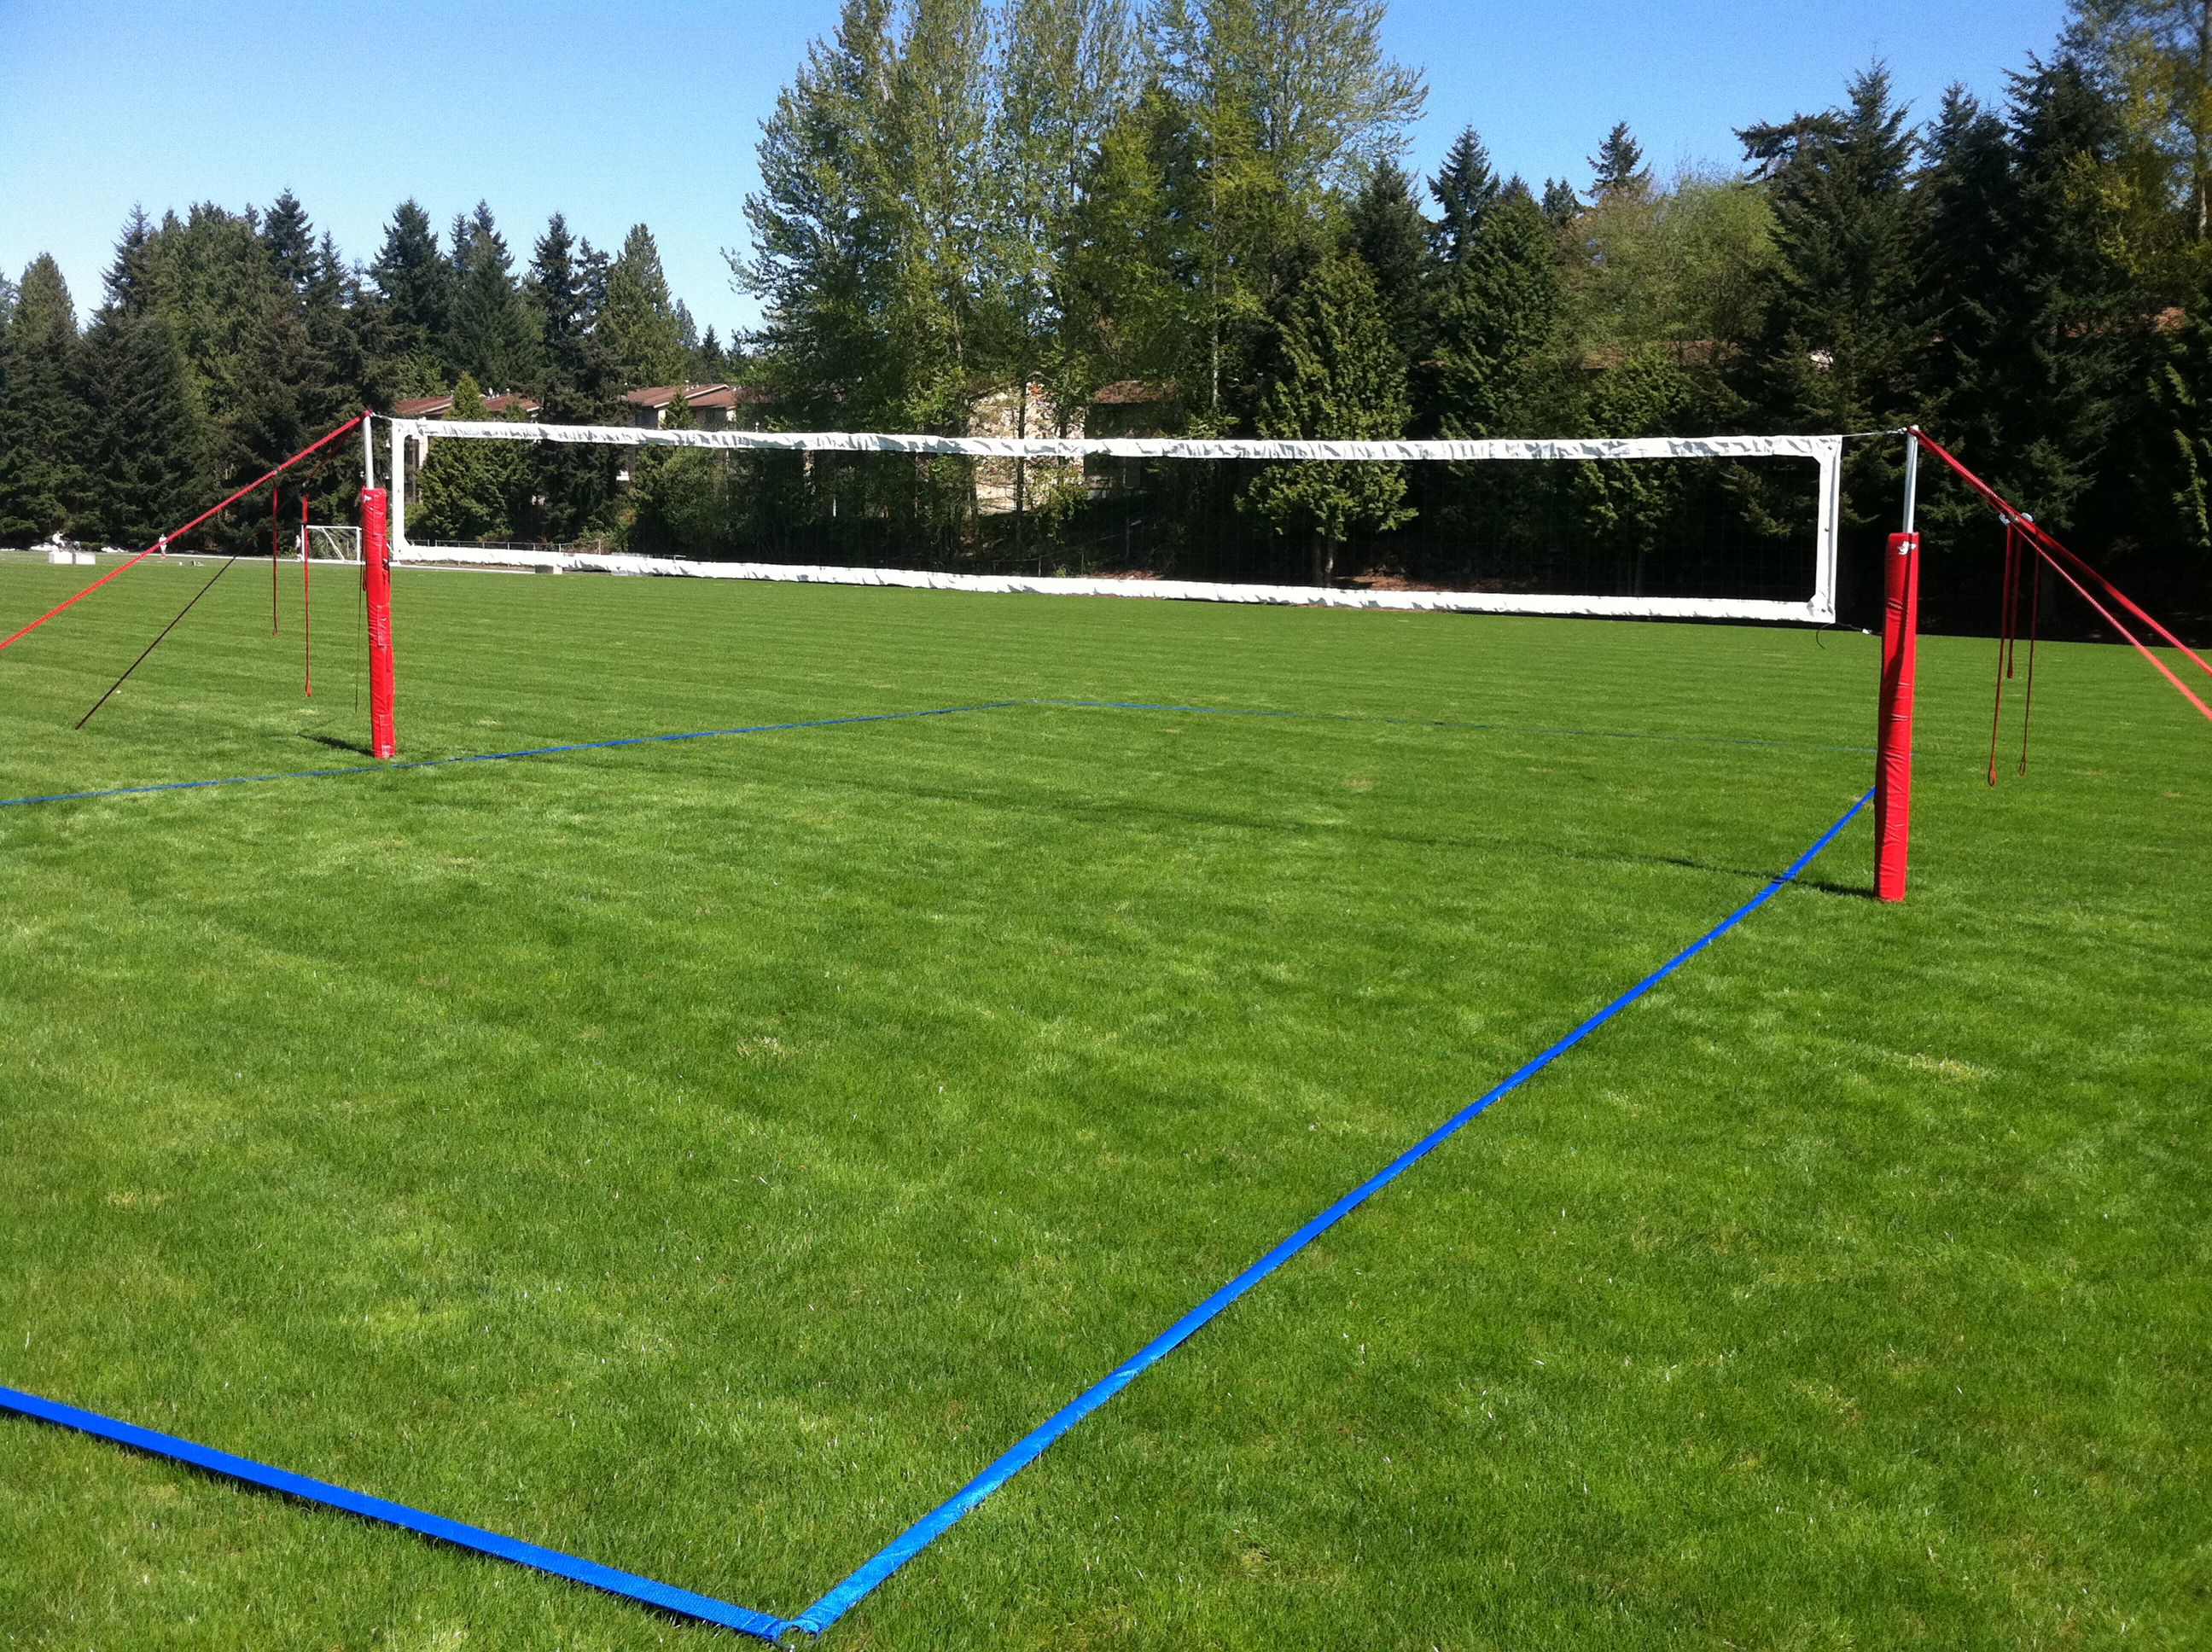 How To Construct A Grass Artificial Turf Volleyball Court Volleyball Court Backyard Home Basketball Court Outdoor Sports Court